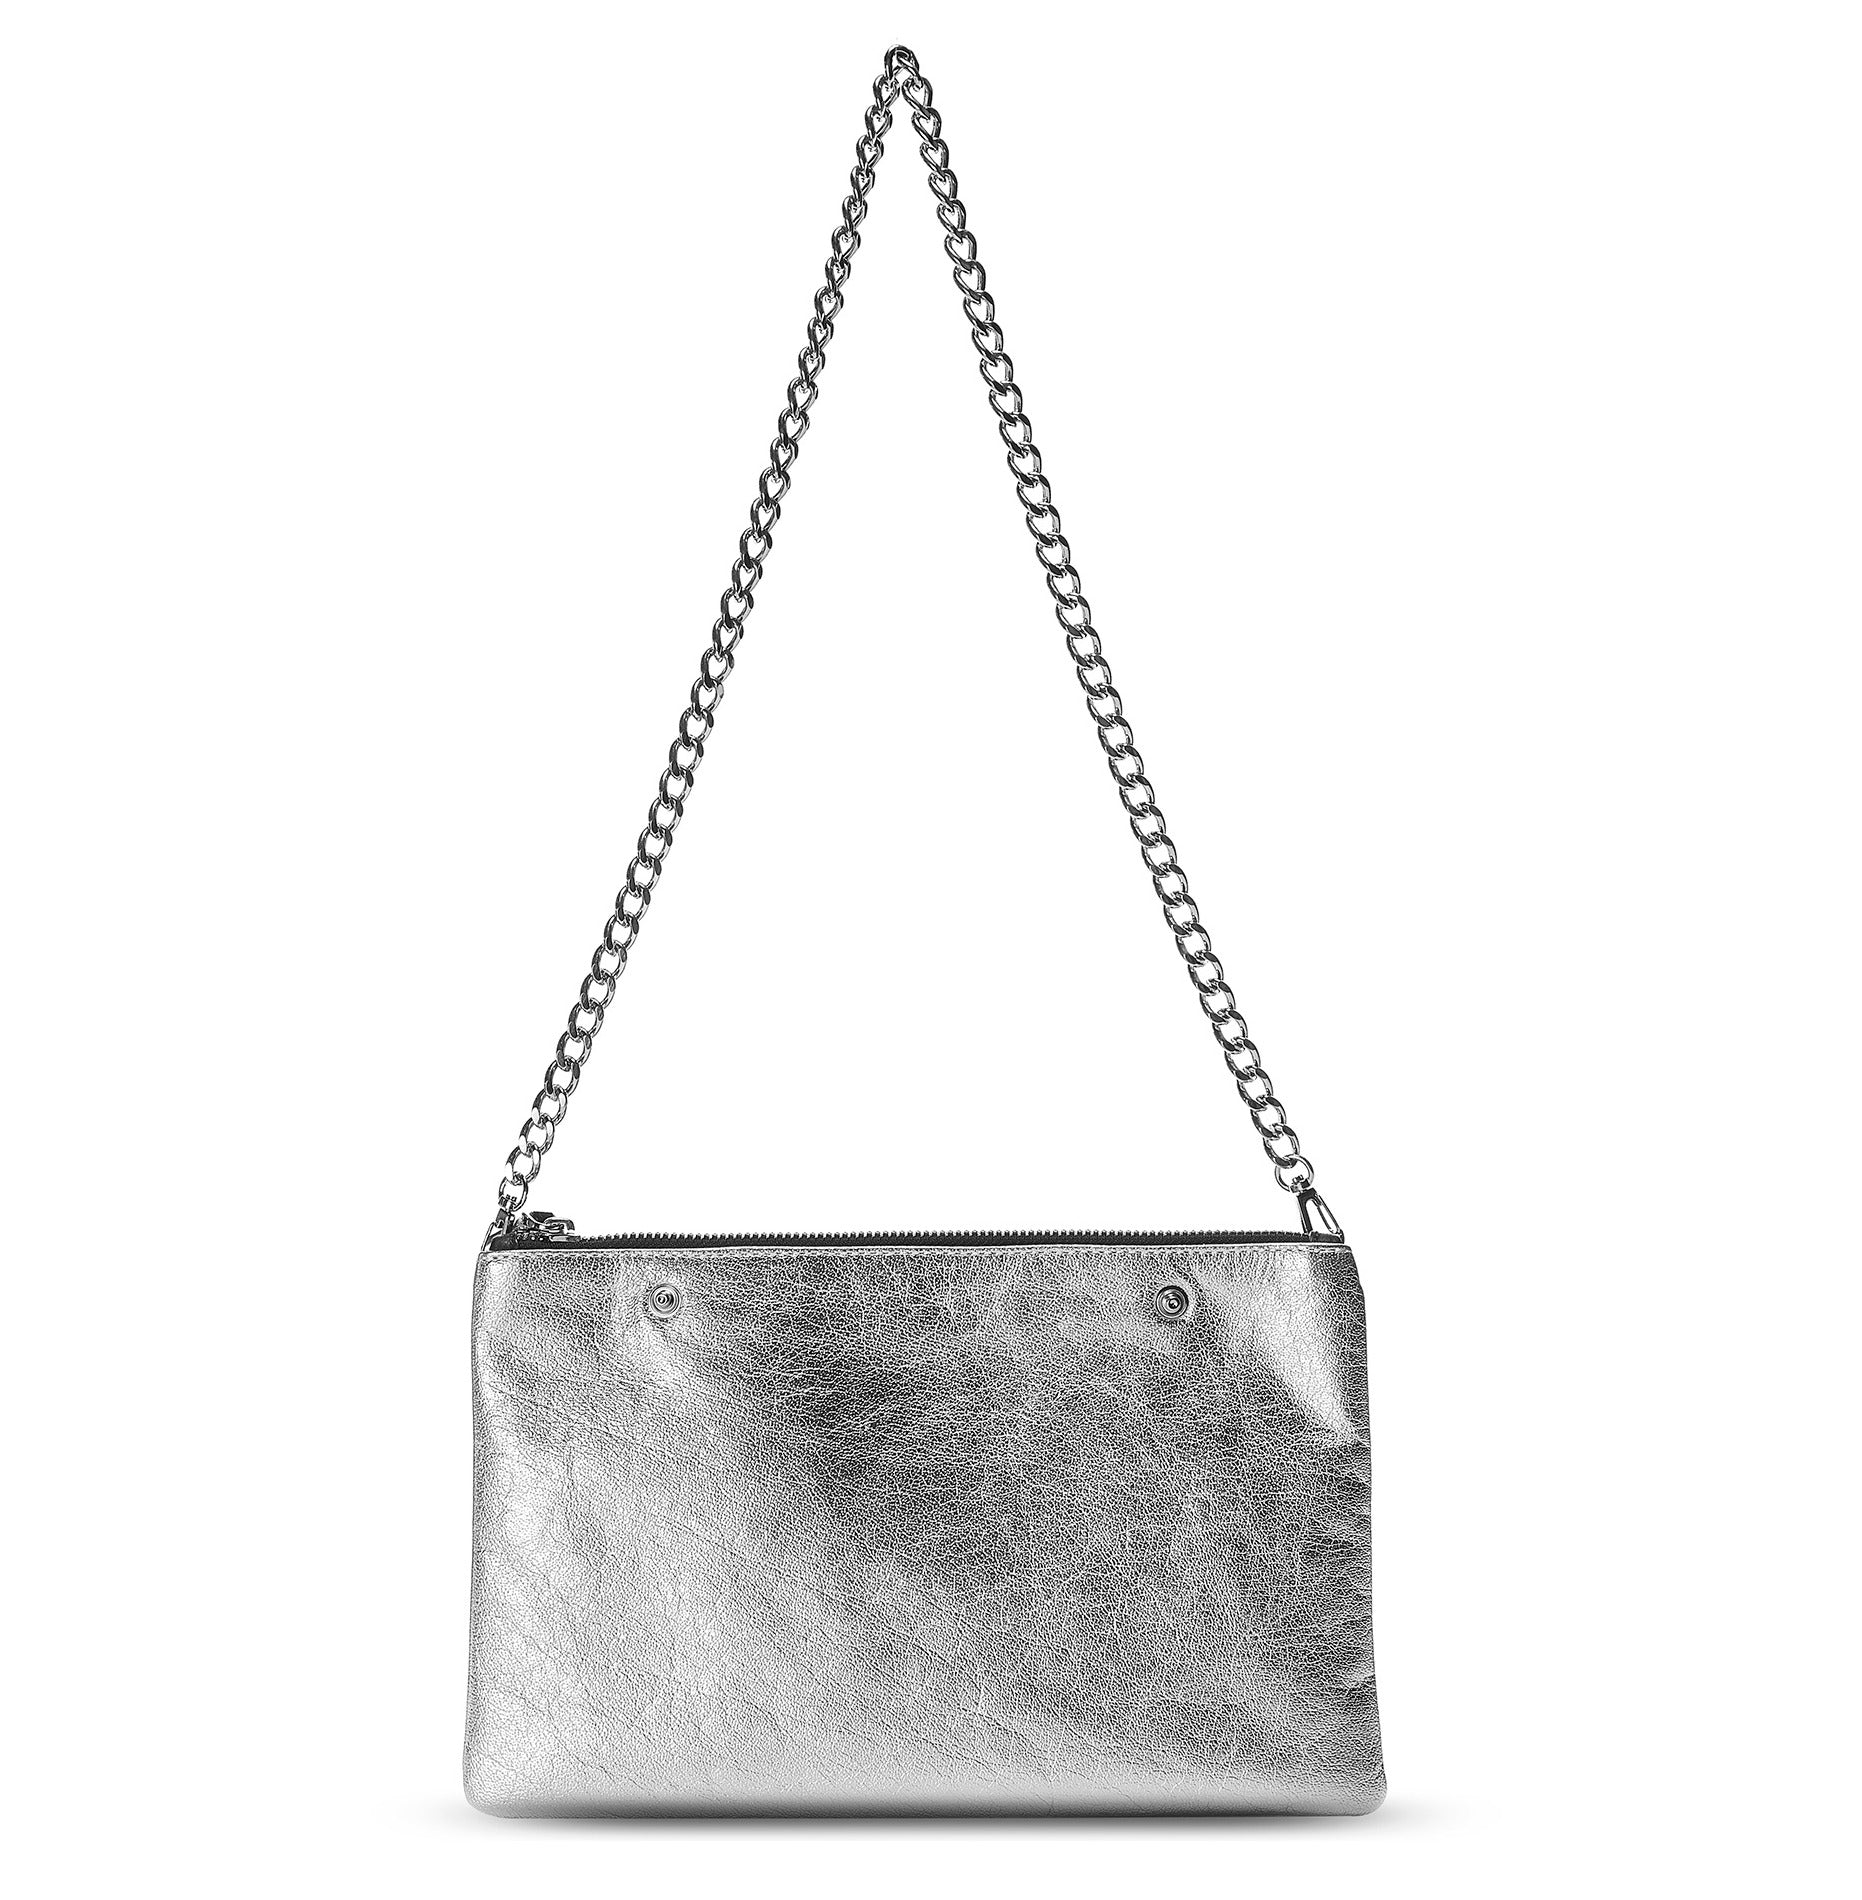 ELENA TWO-WAY SHOULDER BAG - NOTTEVERA